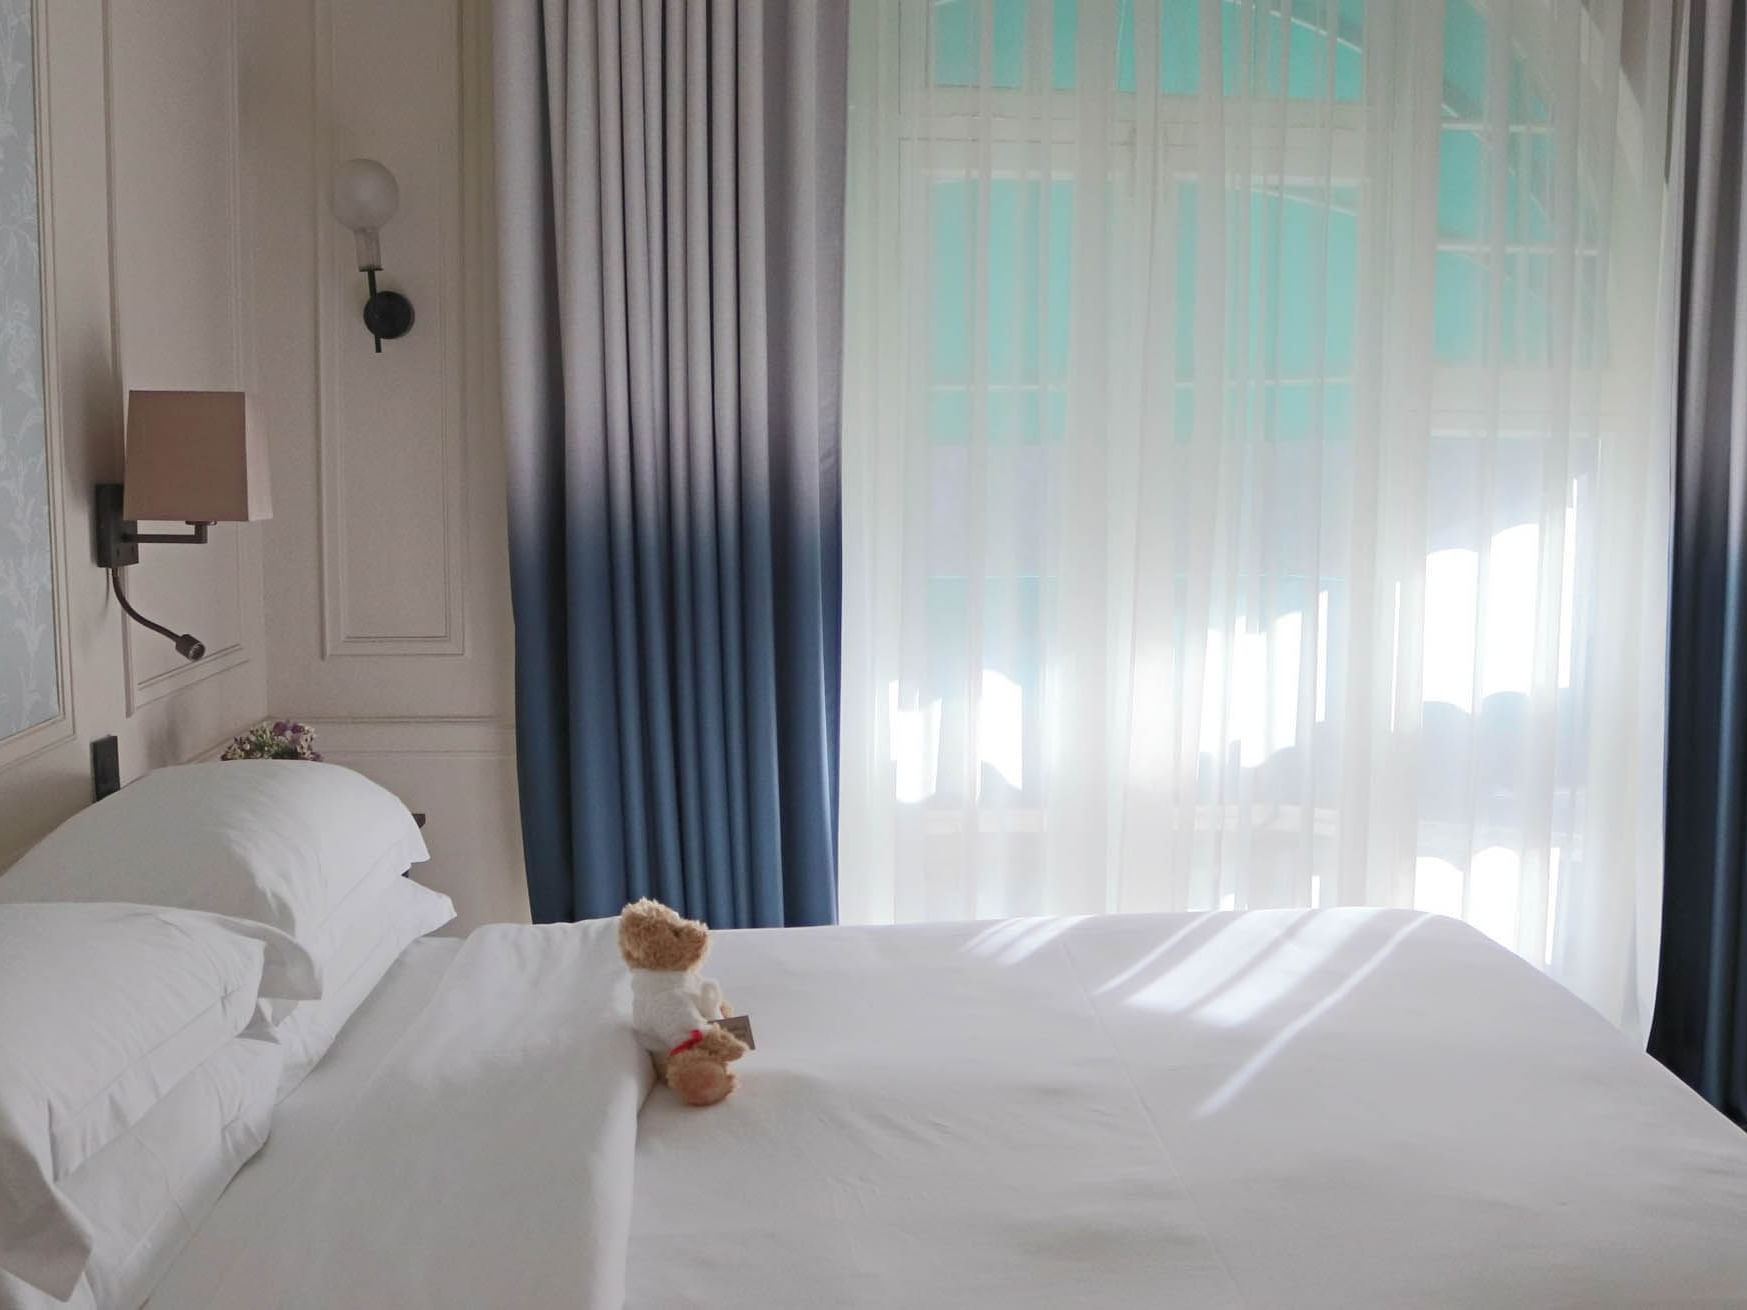 Double room with balcony at Sloane Square Hotel